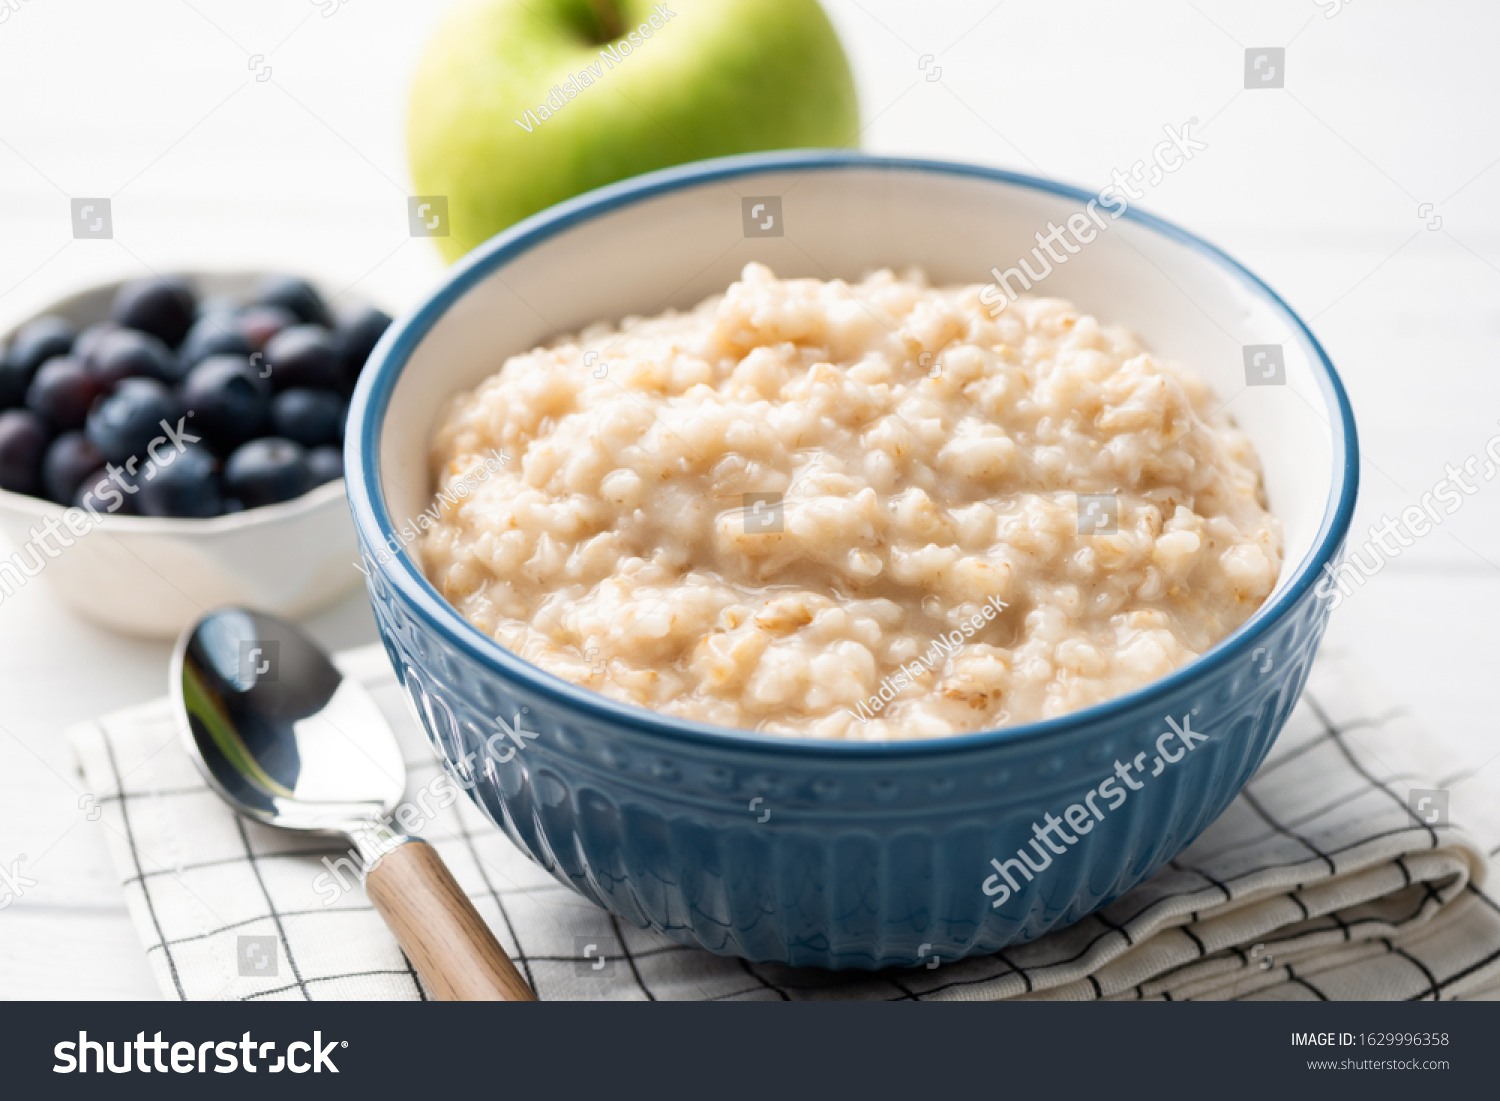 Healthy breakfast oatmeal porridge in bowl. Warm porridge oats, vegan vegetarian weight loss dieting breakfast food #1629996358